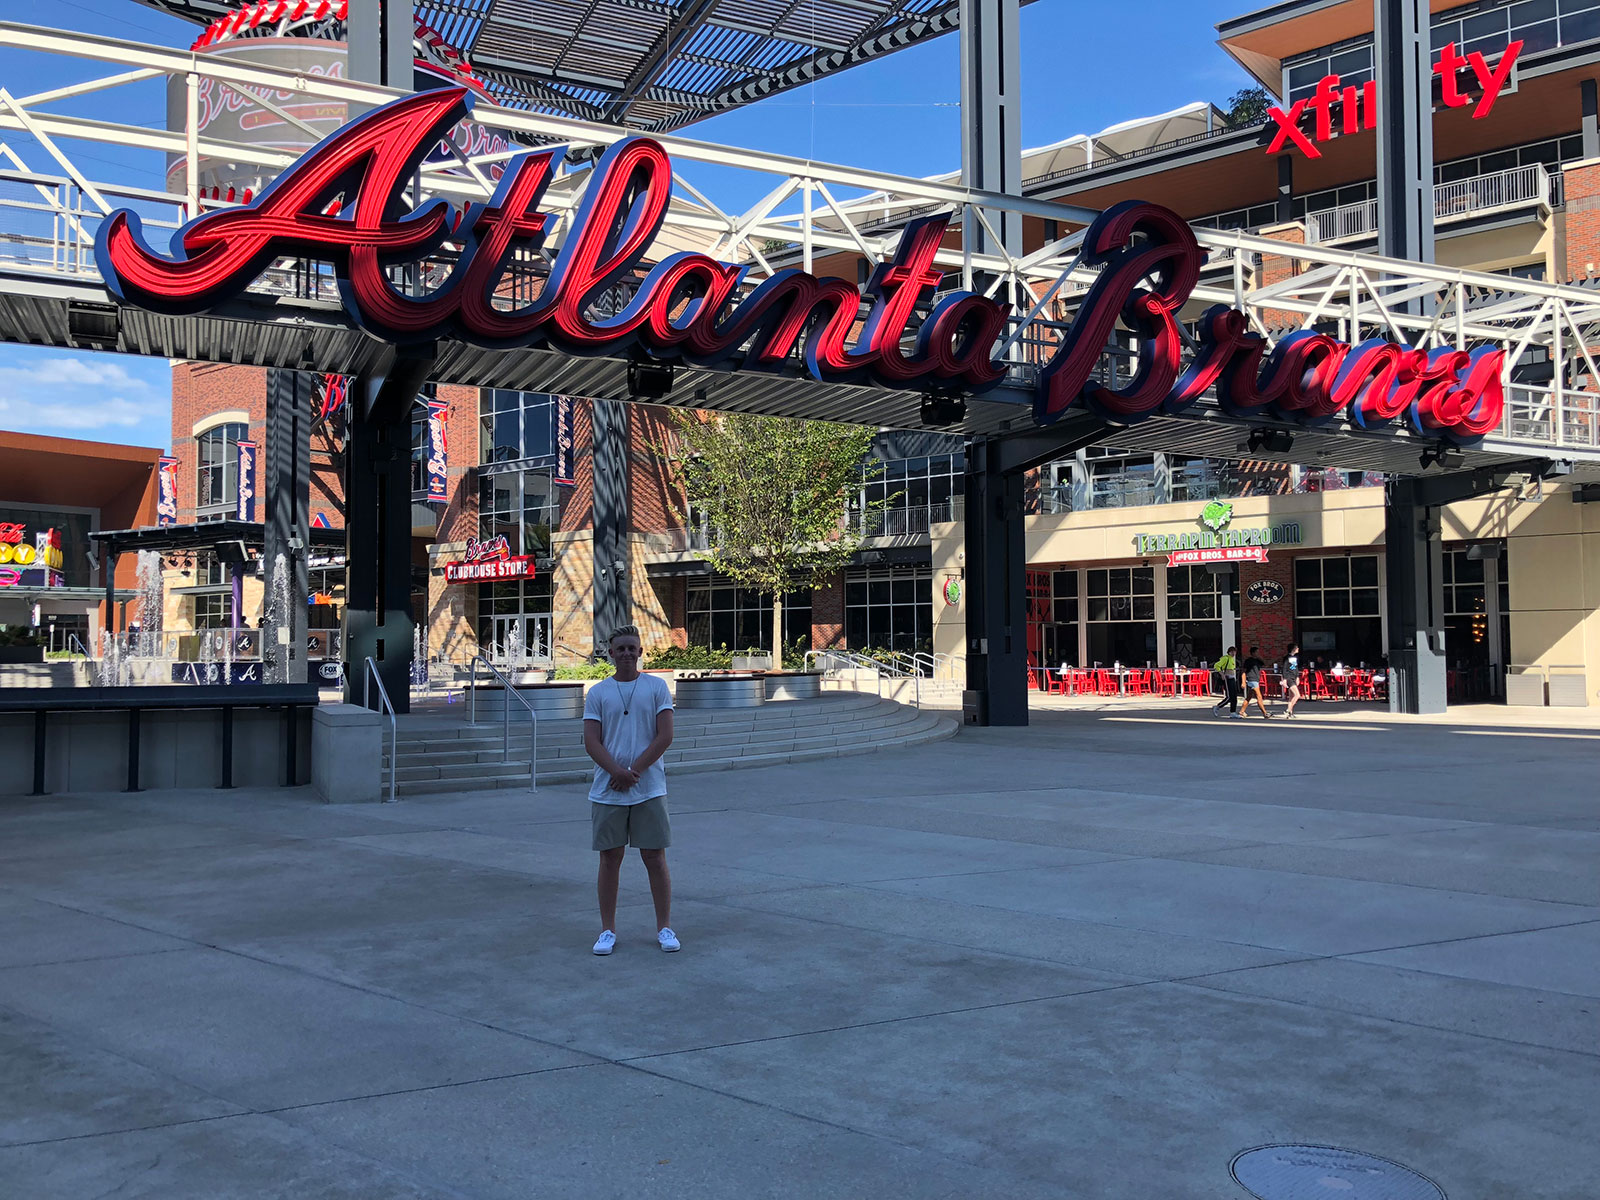 Peter under the Braves Sign